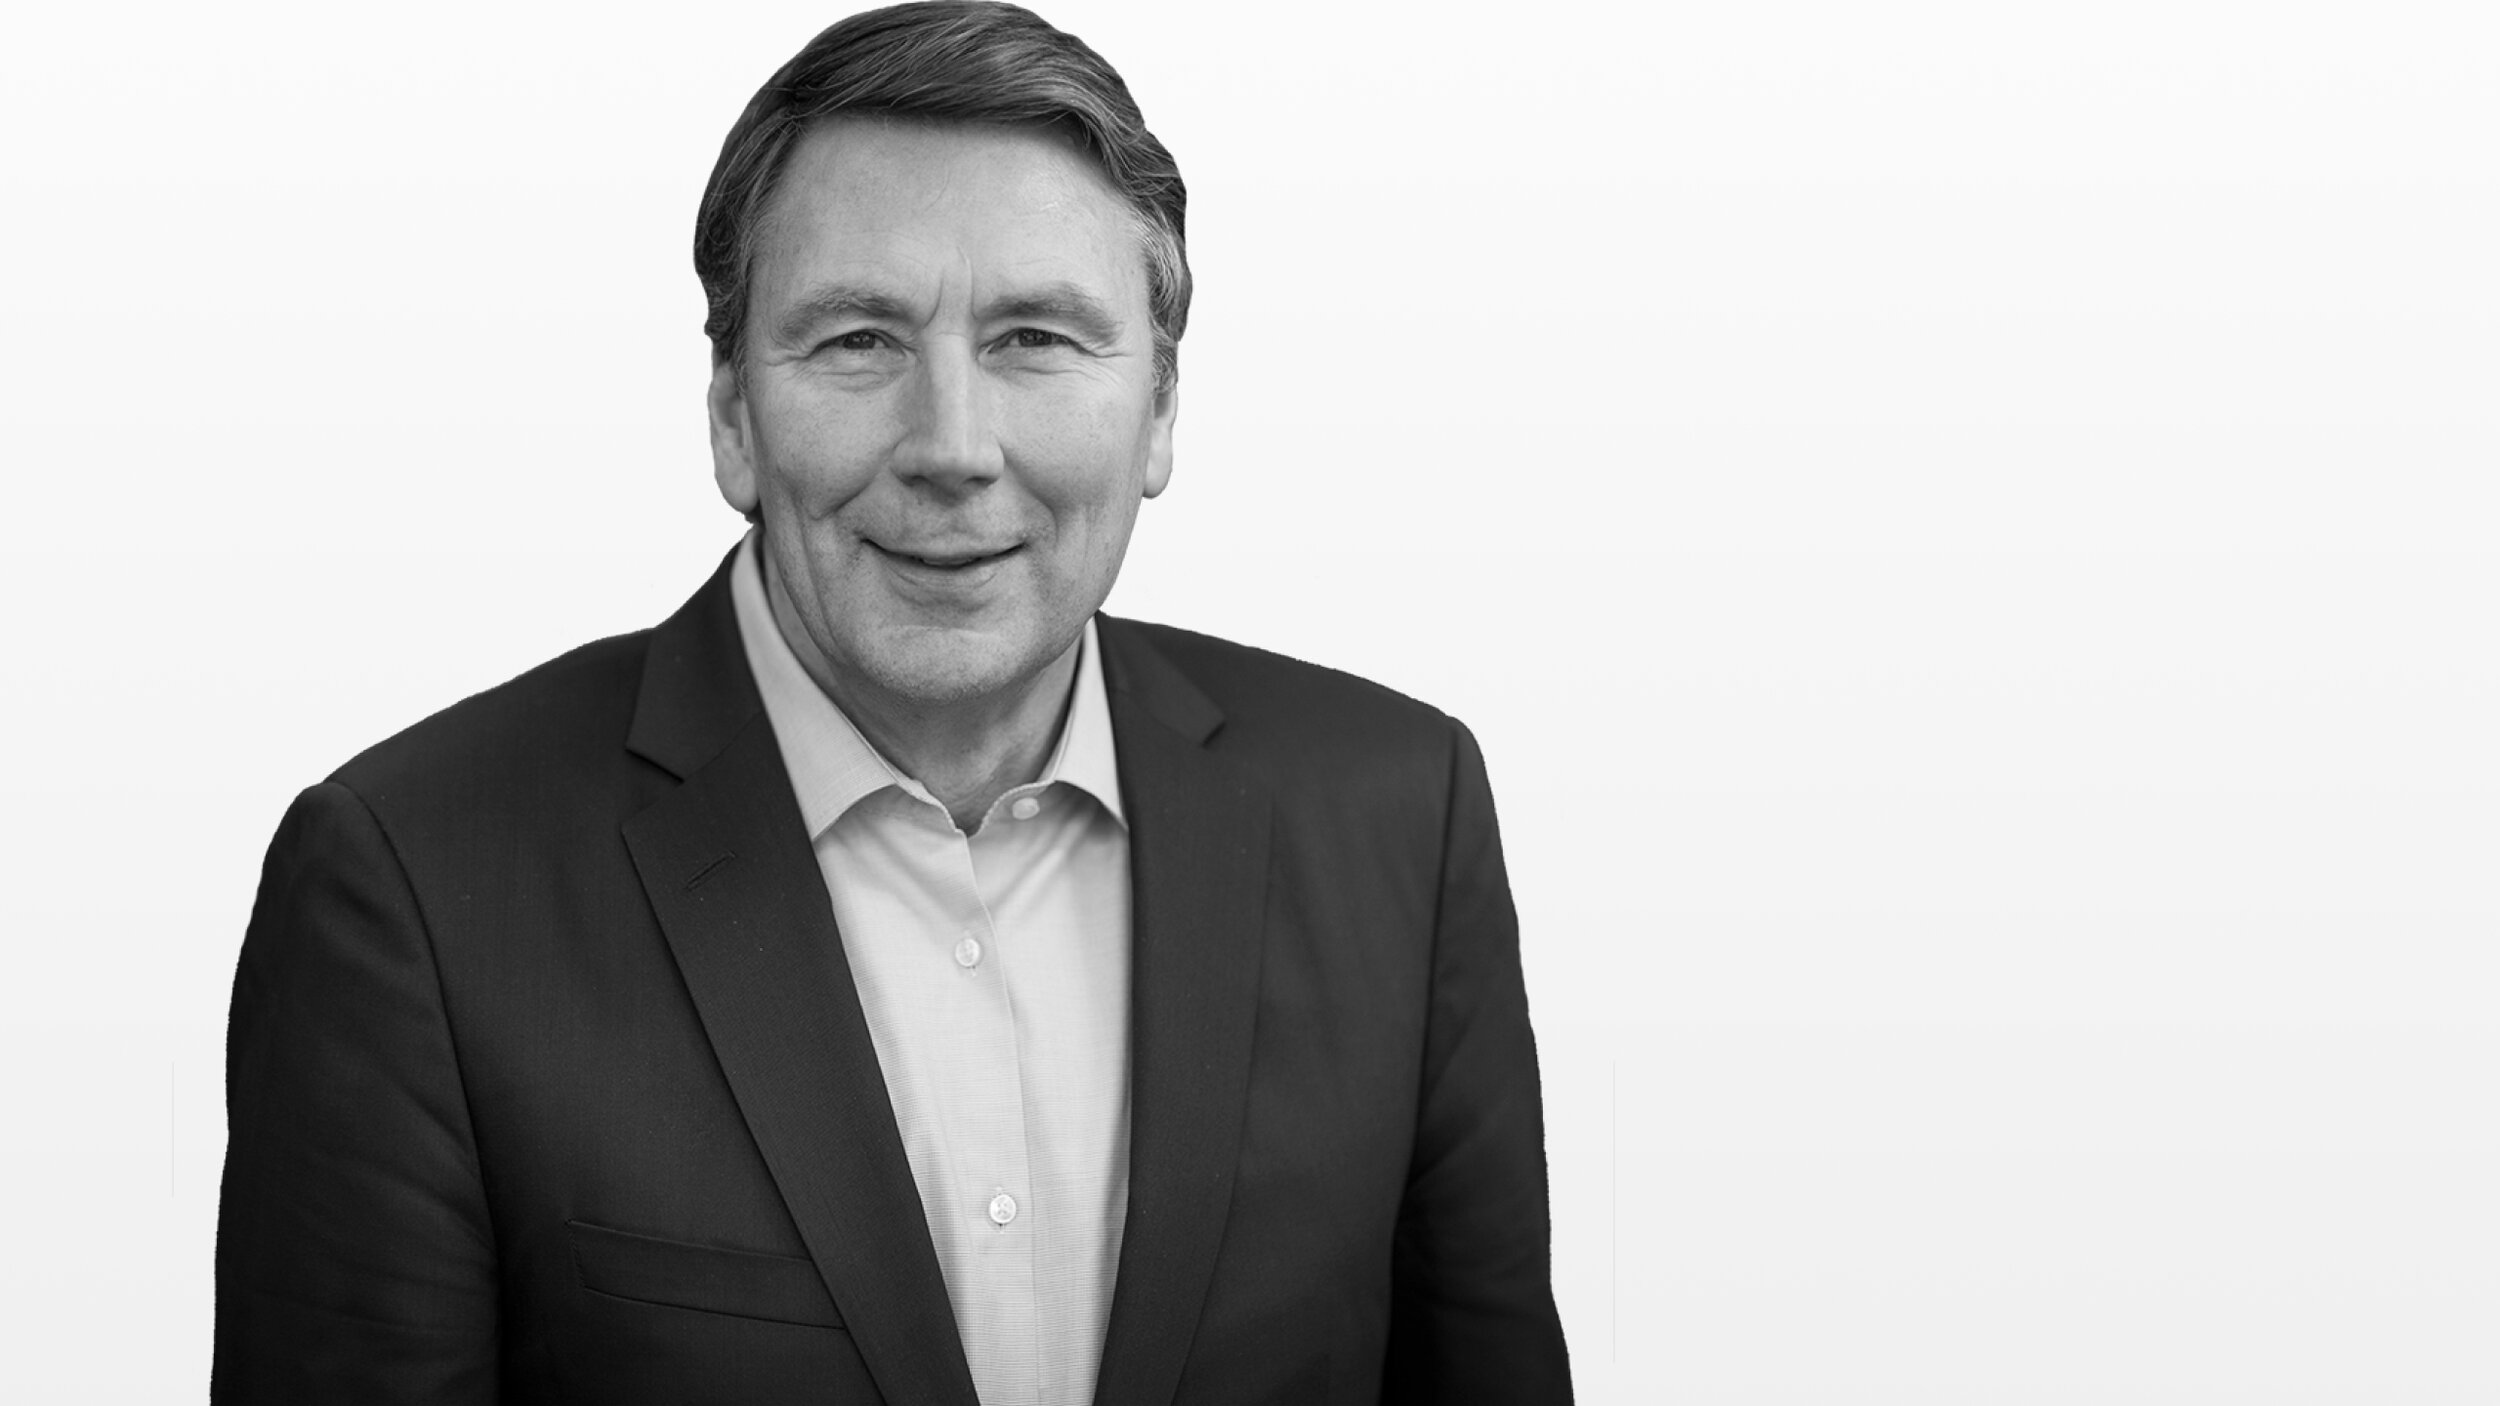 David Thodey: Former Telstra CEO and Current CSIRO Chair - Exploring the state of innovation in Australia and why it's crucial to lift our game.